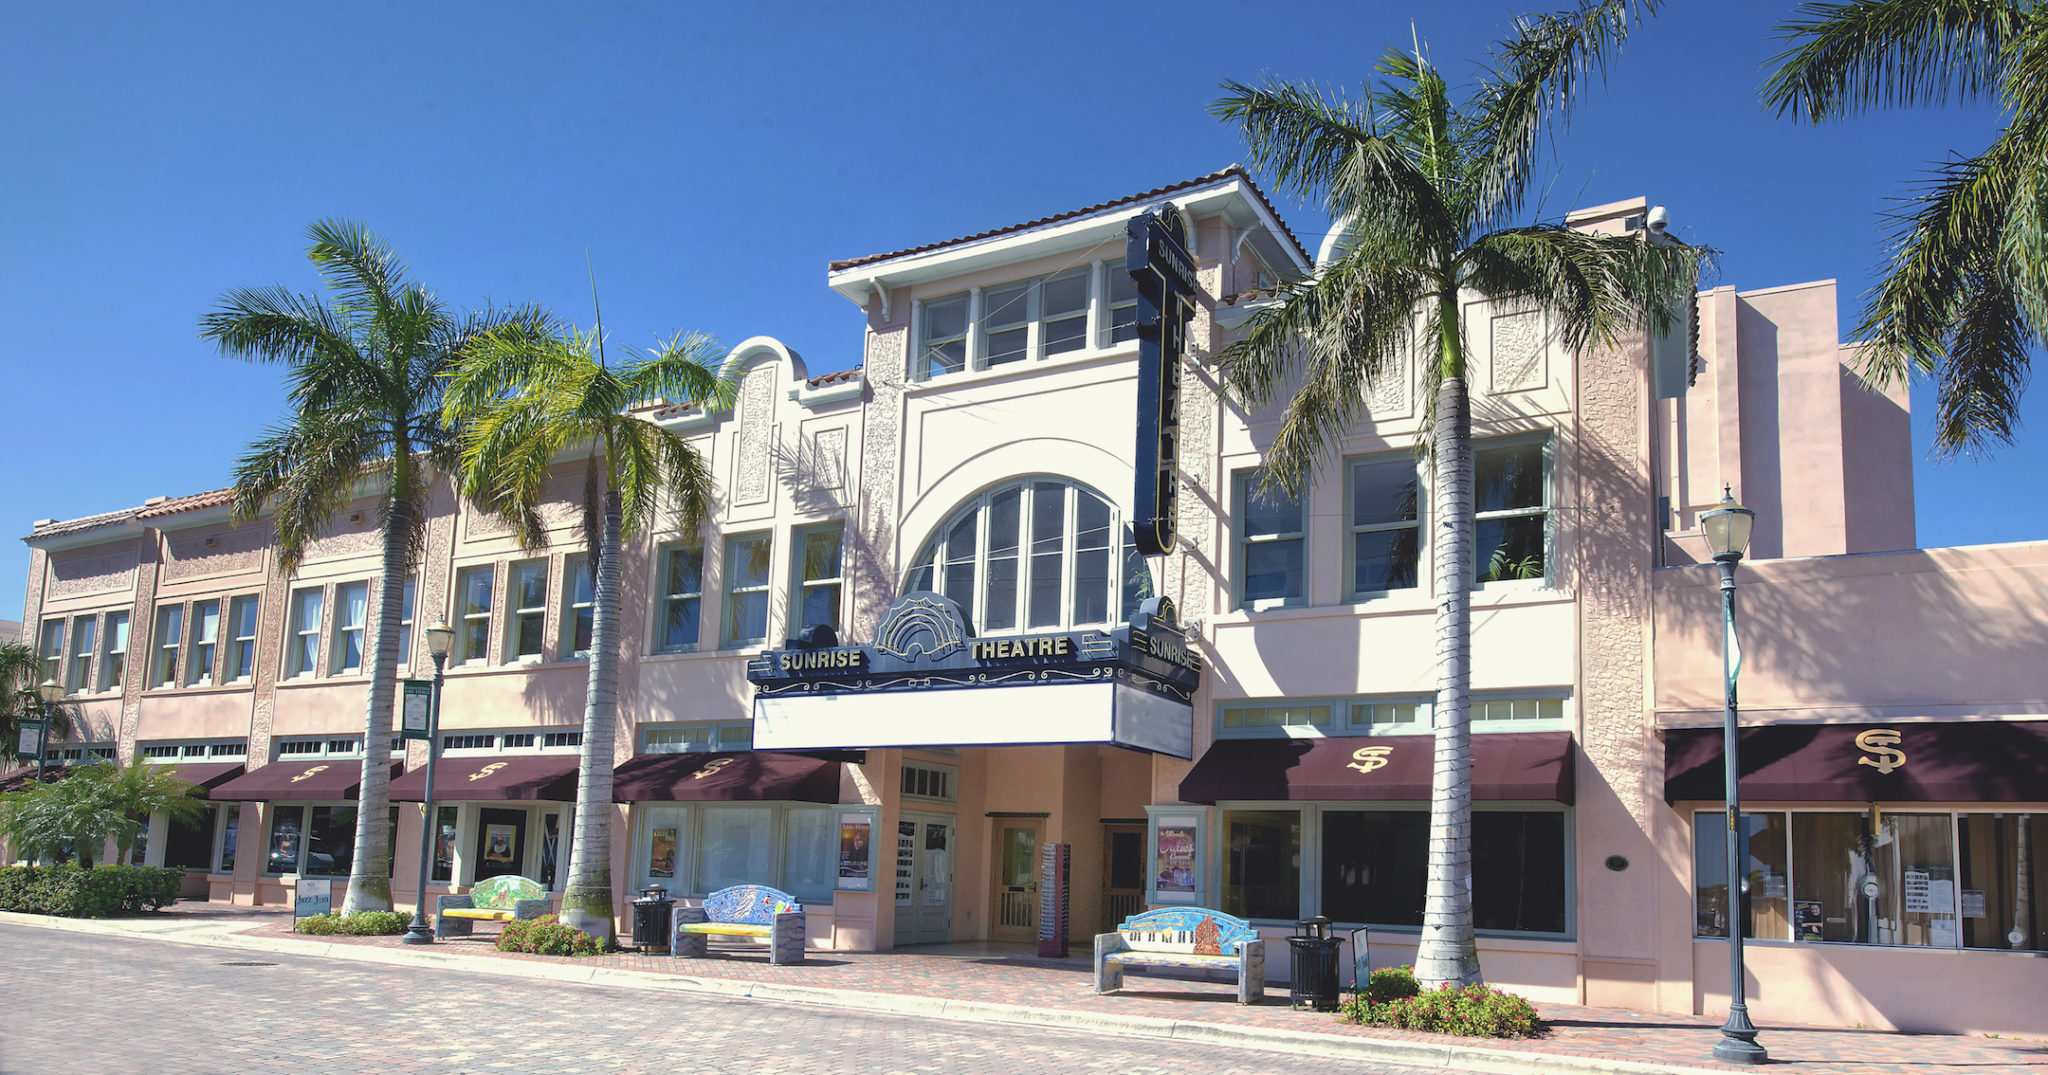 The front of the sunrise theatre bukilding with the Sunrise marquee in front and palm trees in front of the building.